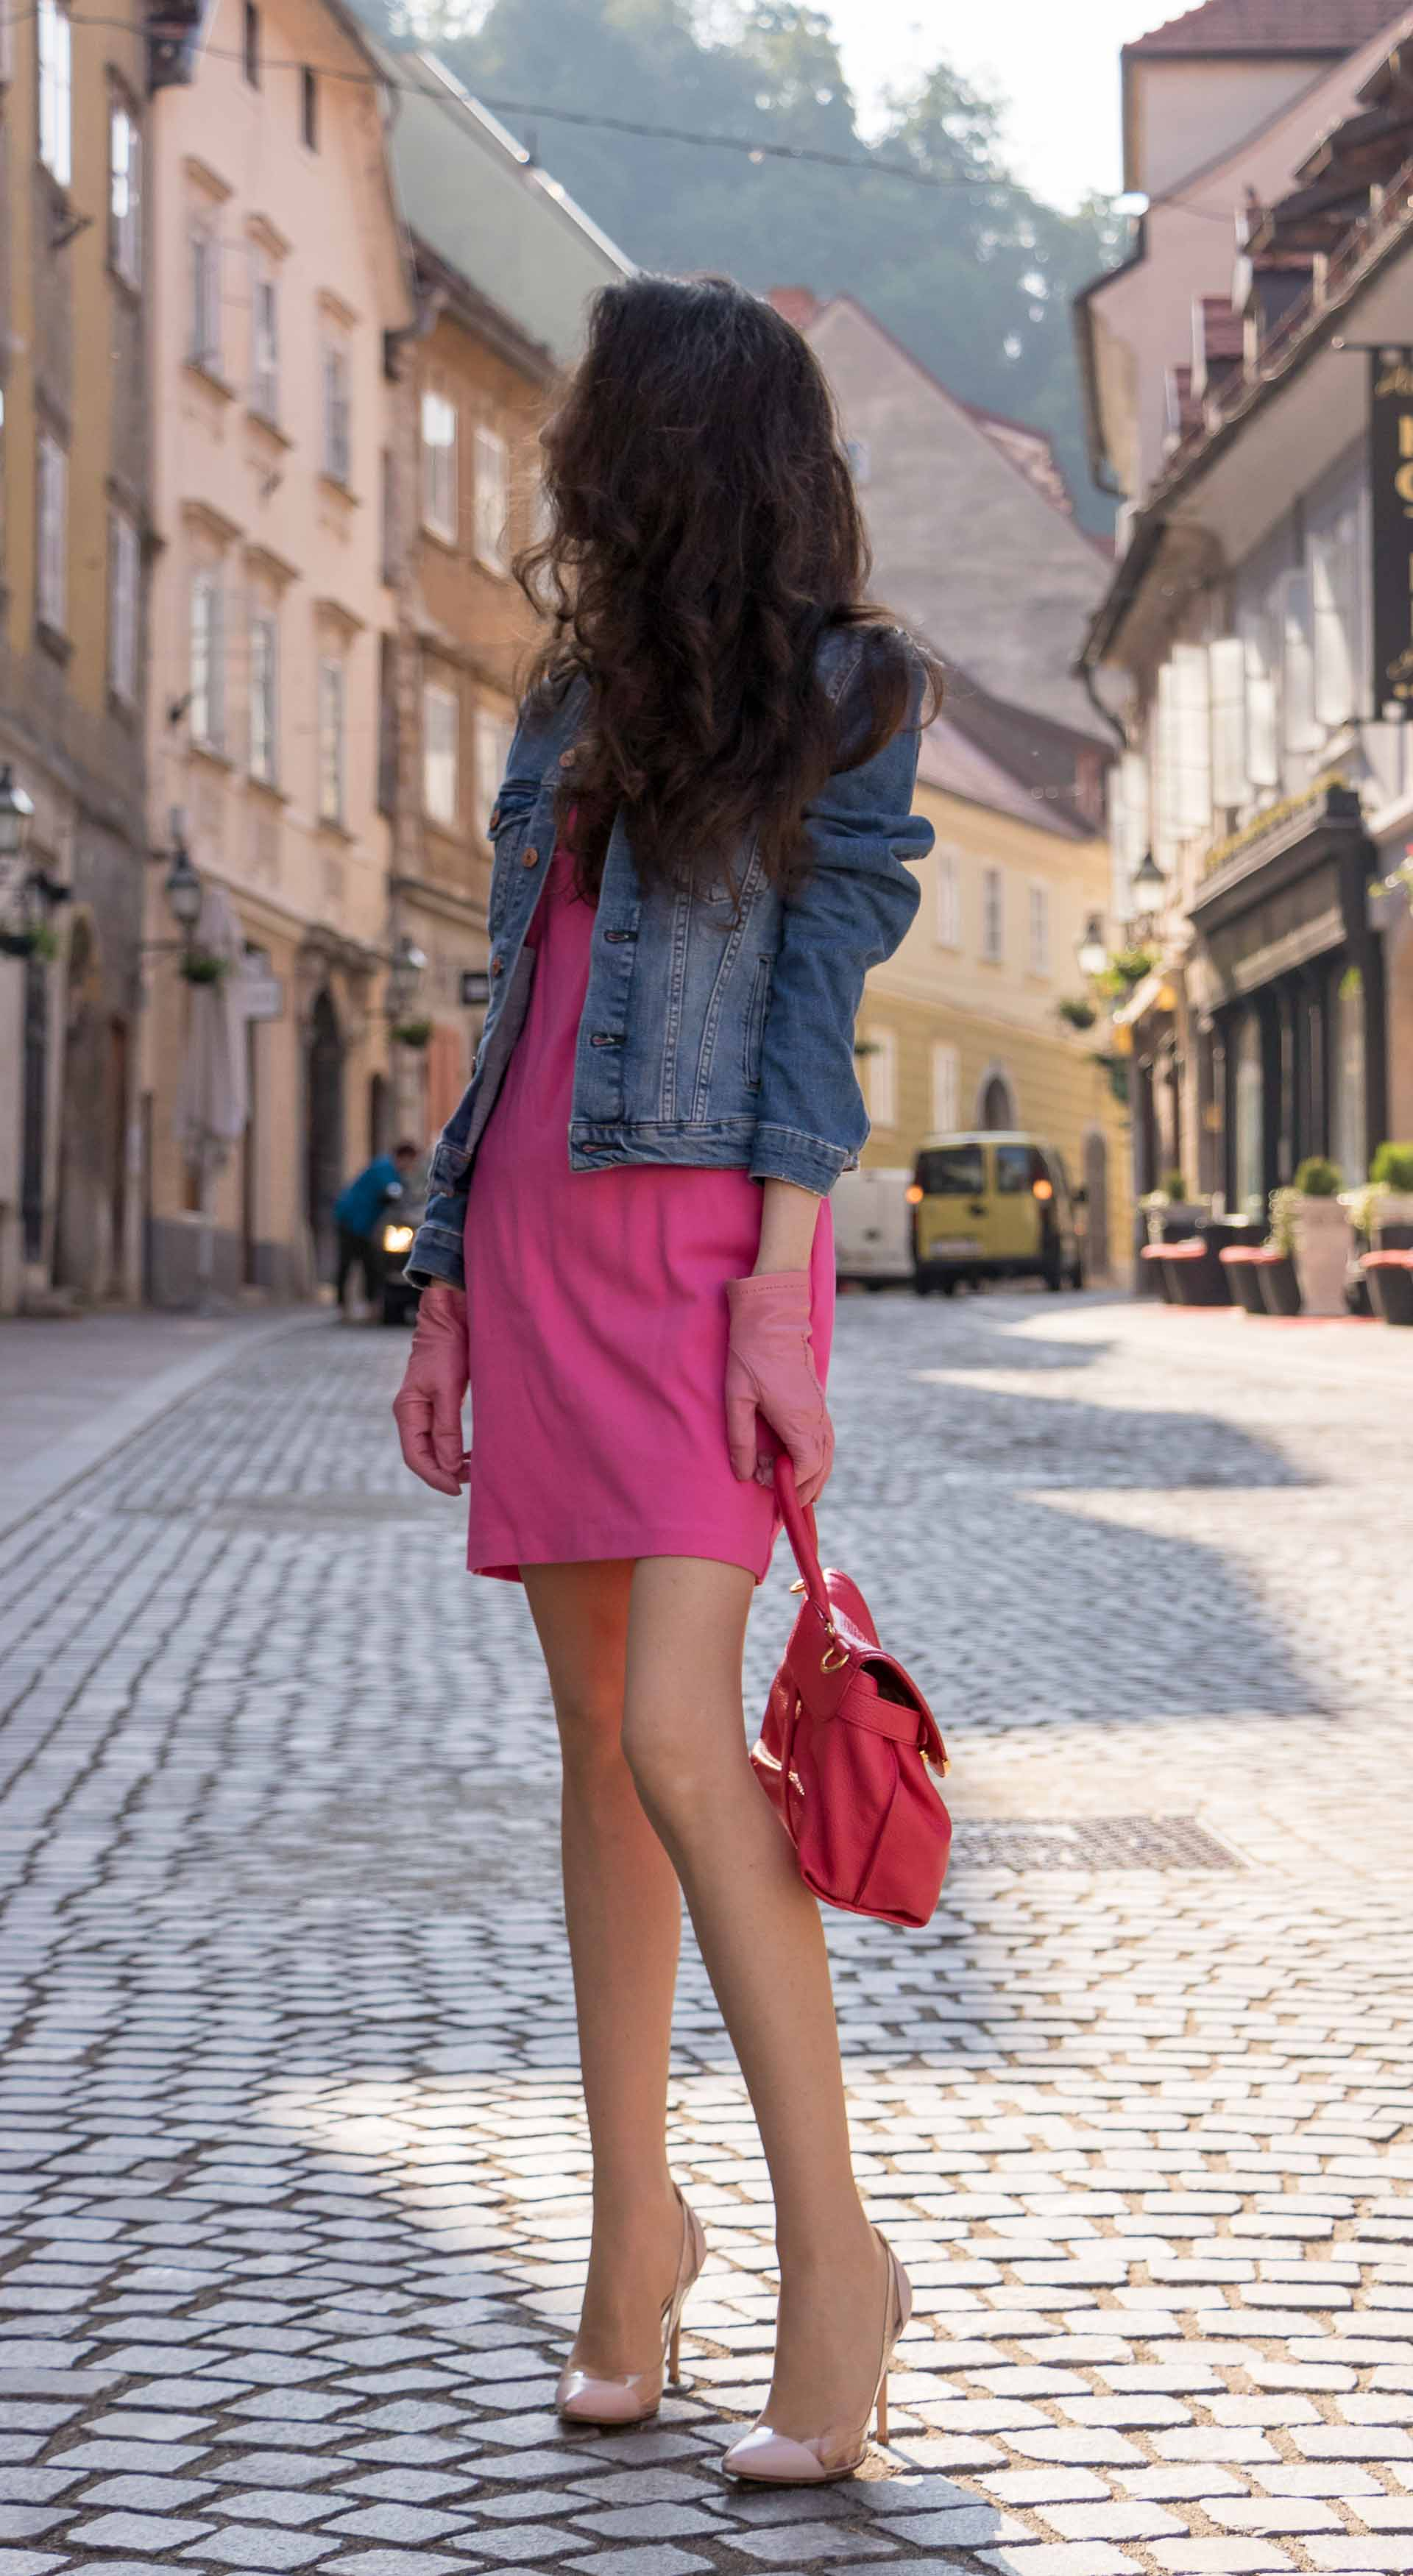 Veronika Lipar Fashion Blogger of Brunette from Wall Street dressed in H&M denim jacket, pink short dress, blush Gianvito Rossi plexi pumps, pink Forzieri gloves, See by Chloé pink top handle bag, Adam Selman x Le Specs white cat eye Lolita sunglasses while standing on the street in Ljubljana